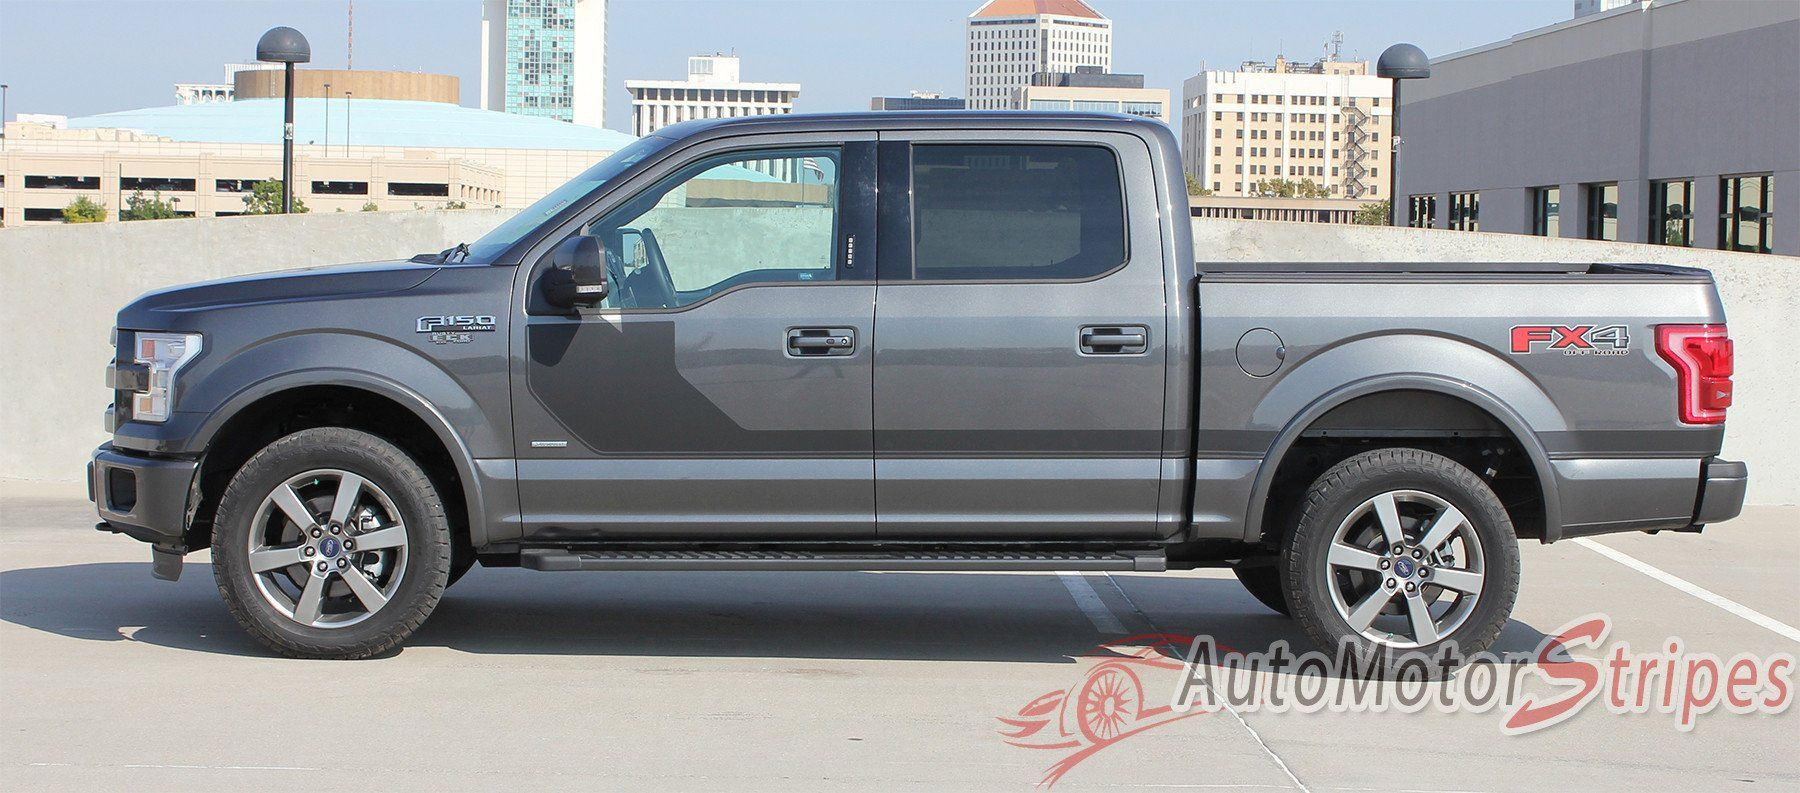 2015 2020 Ford F 150 Sideline Special Edition Appearance Package